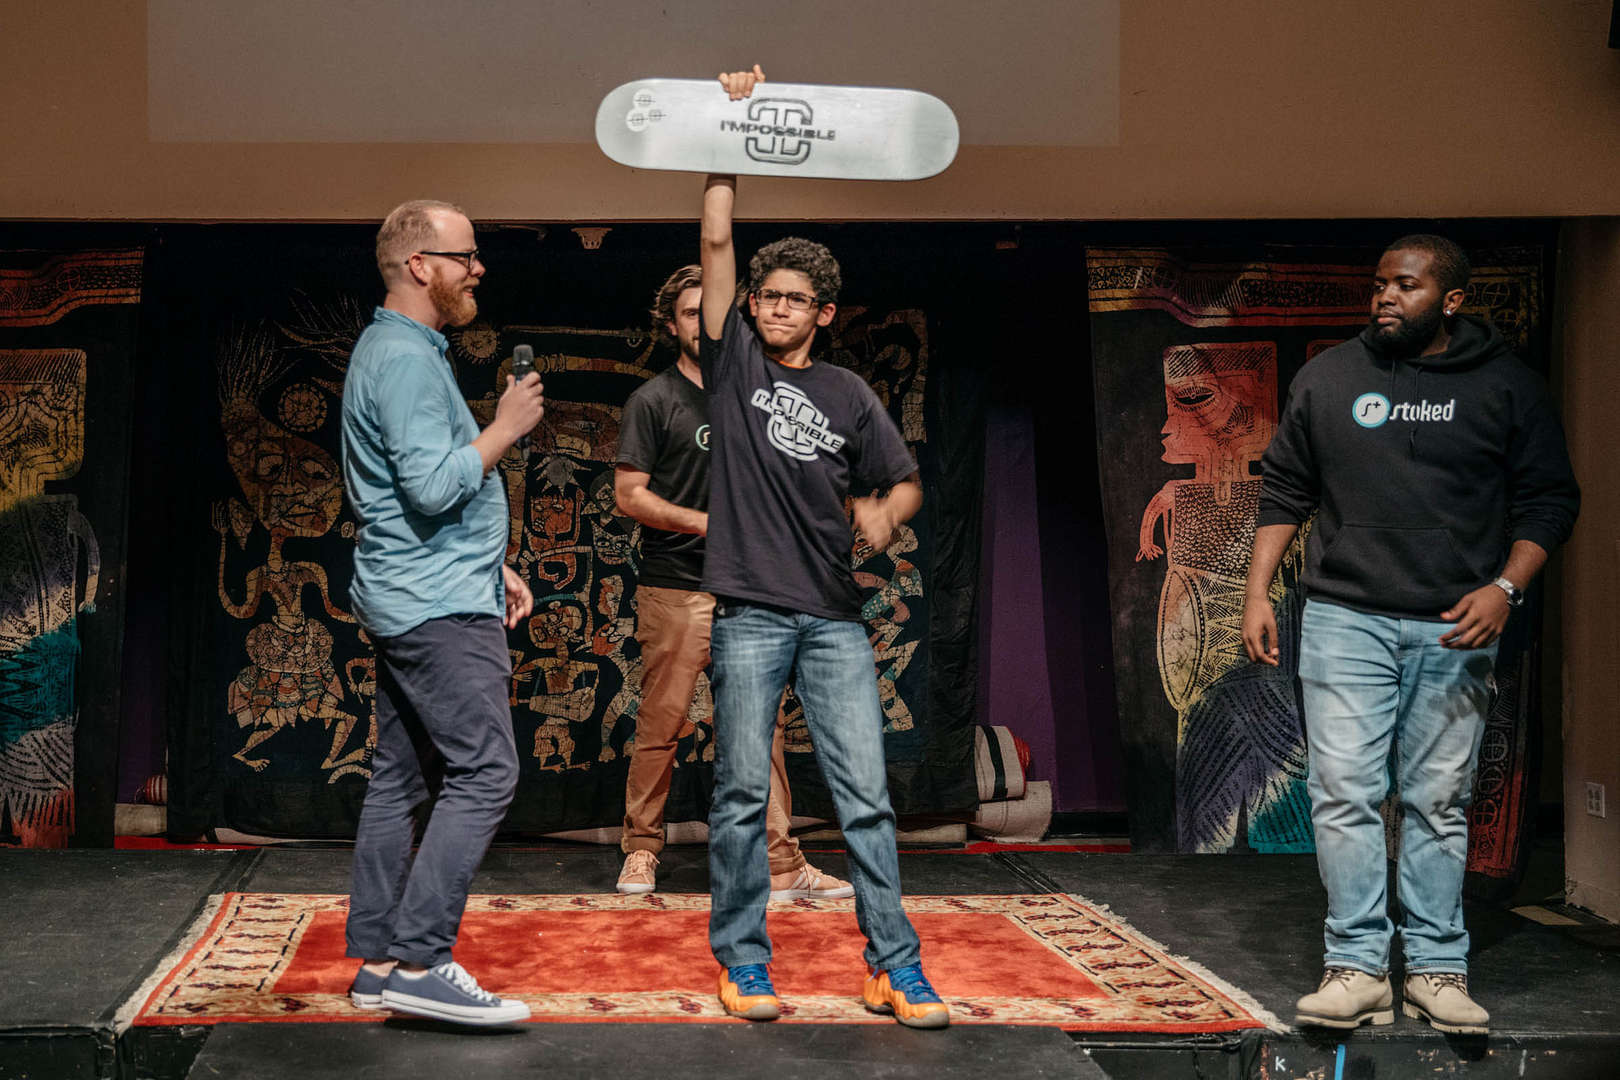 Student triumphantly holds up his skateboard on stage